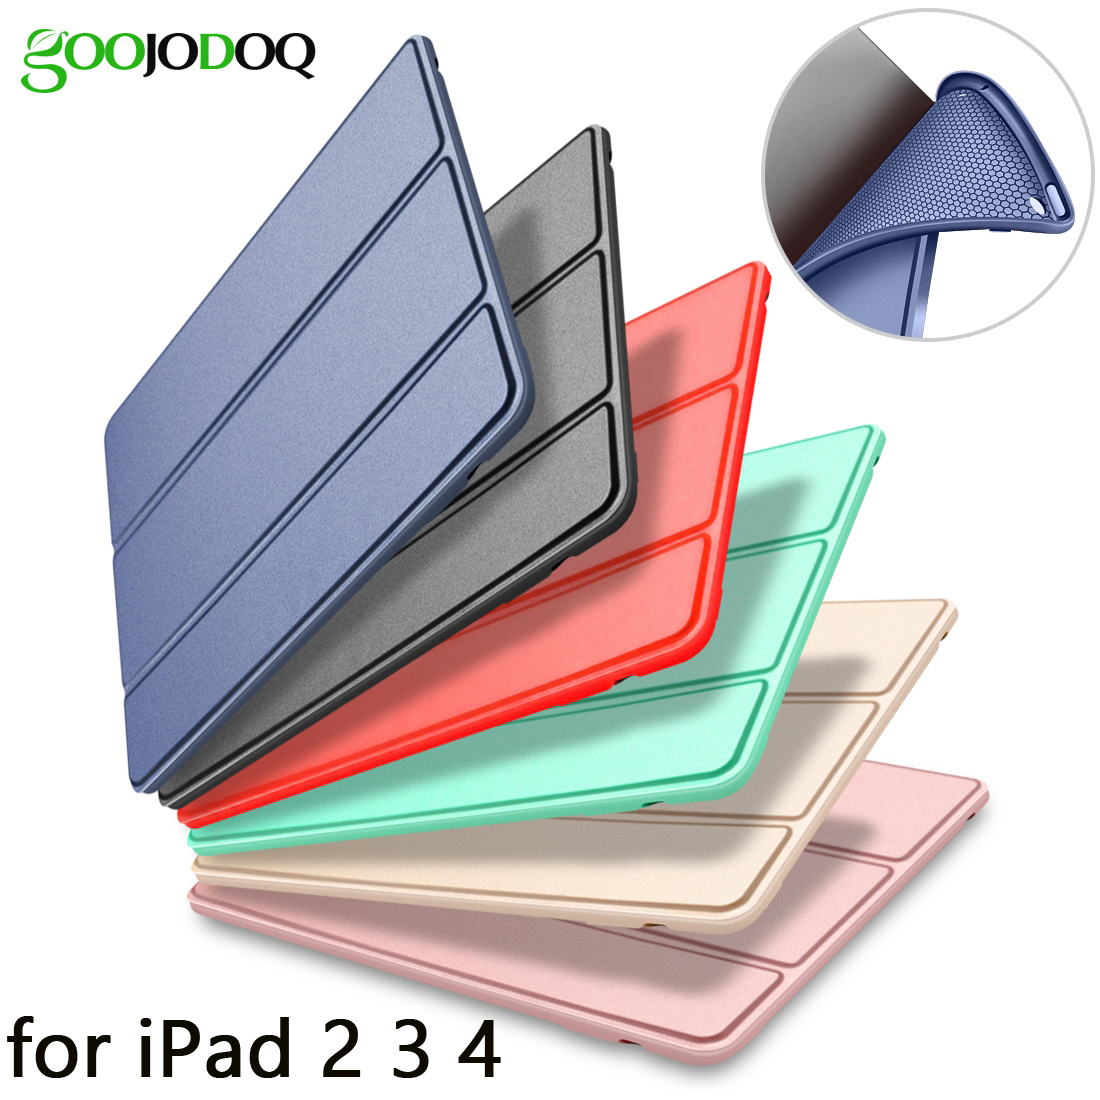 Case for iPad 2 3 4 Case Silicone Soft Back Folio Stand with Auto Sleep/Wake Up PU Leather Smart Cover for iPad 3 4 2 Case dowswin case for ipad 2 3 4 soft back cover tpu leather case for ipad 4 flip smart cover for ipad 2 case auto sleep wake up